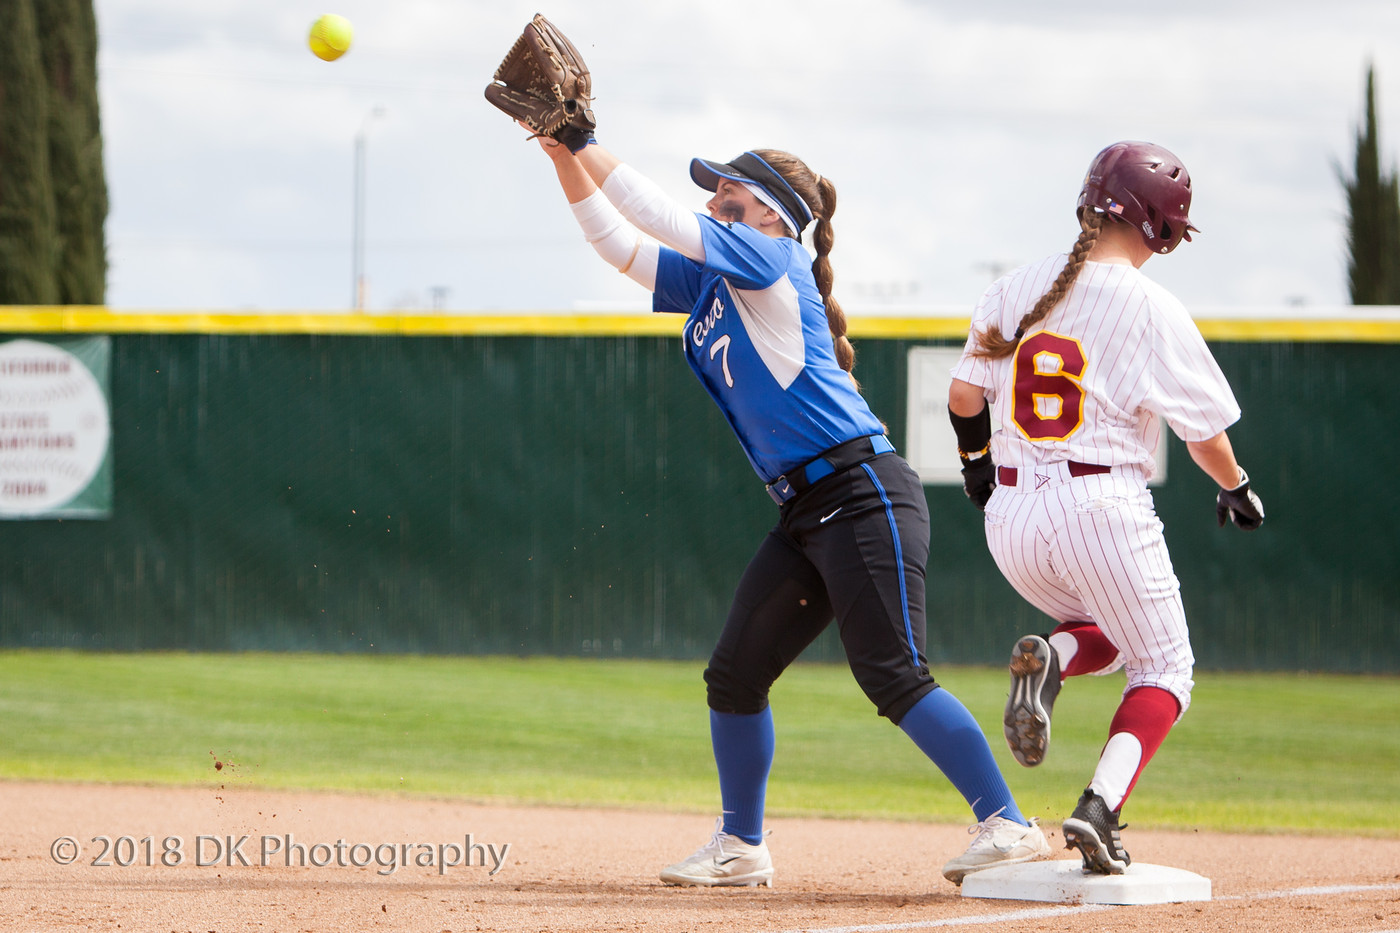 City commits 4 errors that lead to 4 Sierra runs as the Wolverines sweep the Big 8 doubleheader